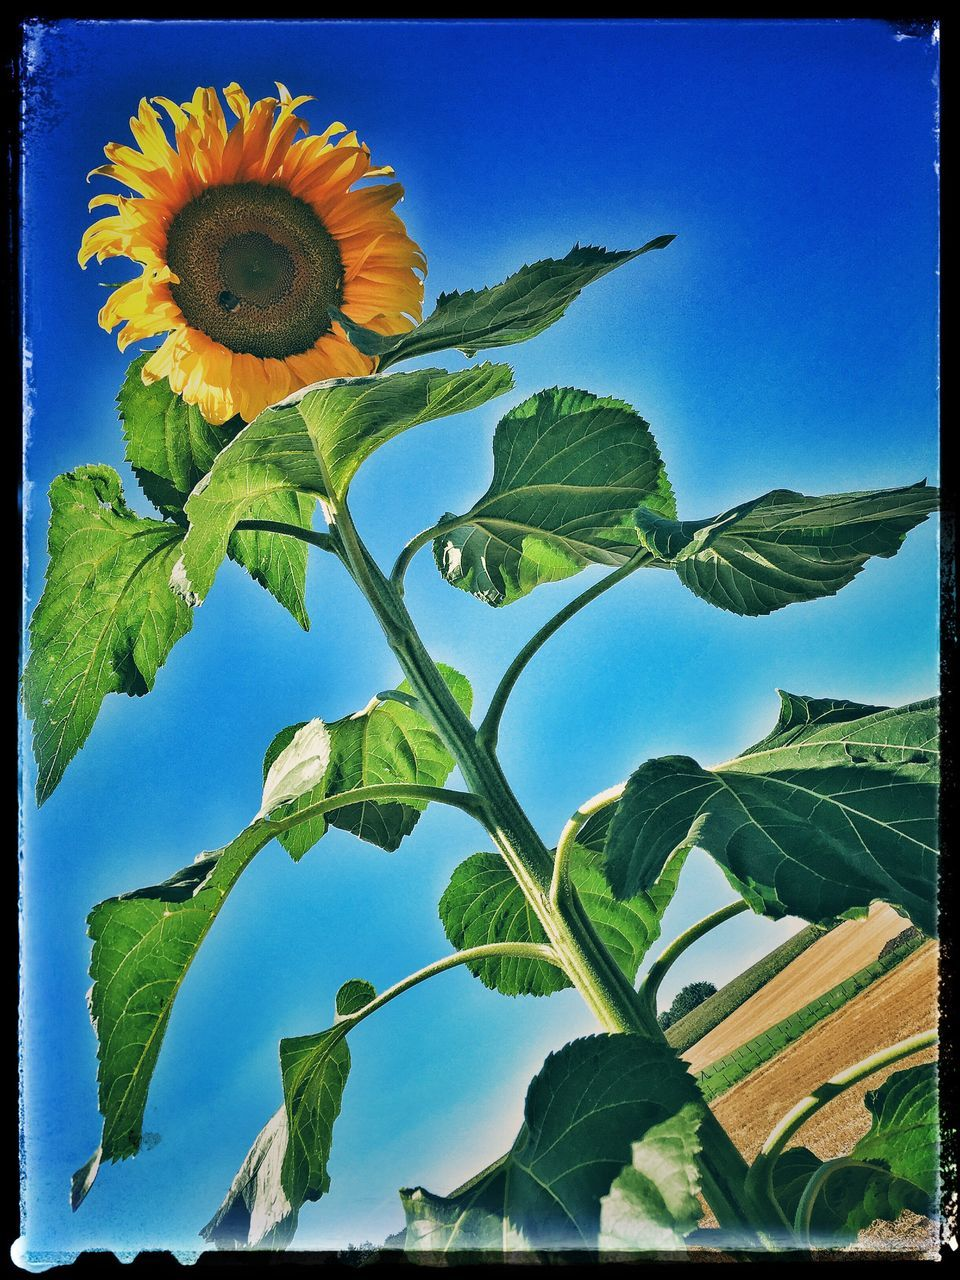 leaf, day, low angle view, growth, blue, no people, sky, outdoors, green color, beauty in nature, nature, freshness, tree, flower, clear sky, sunflower, plant, fragility, scenics, close-up, banana tree, flower head